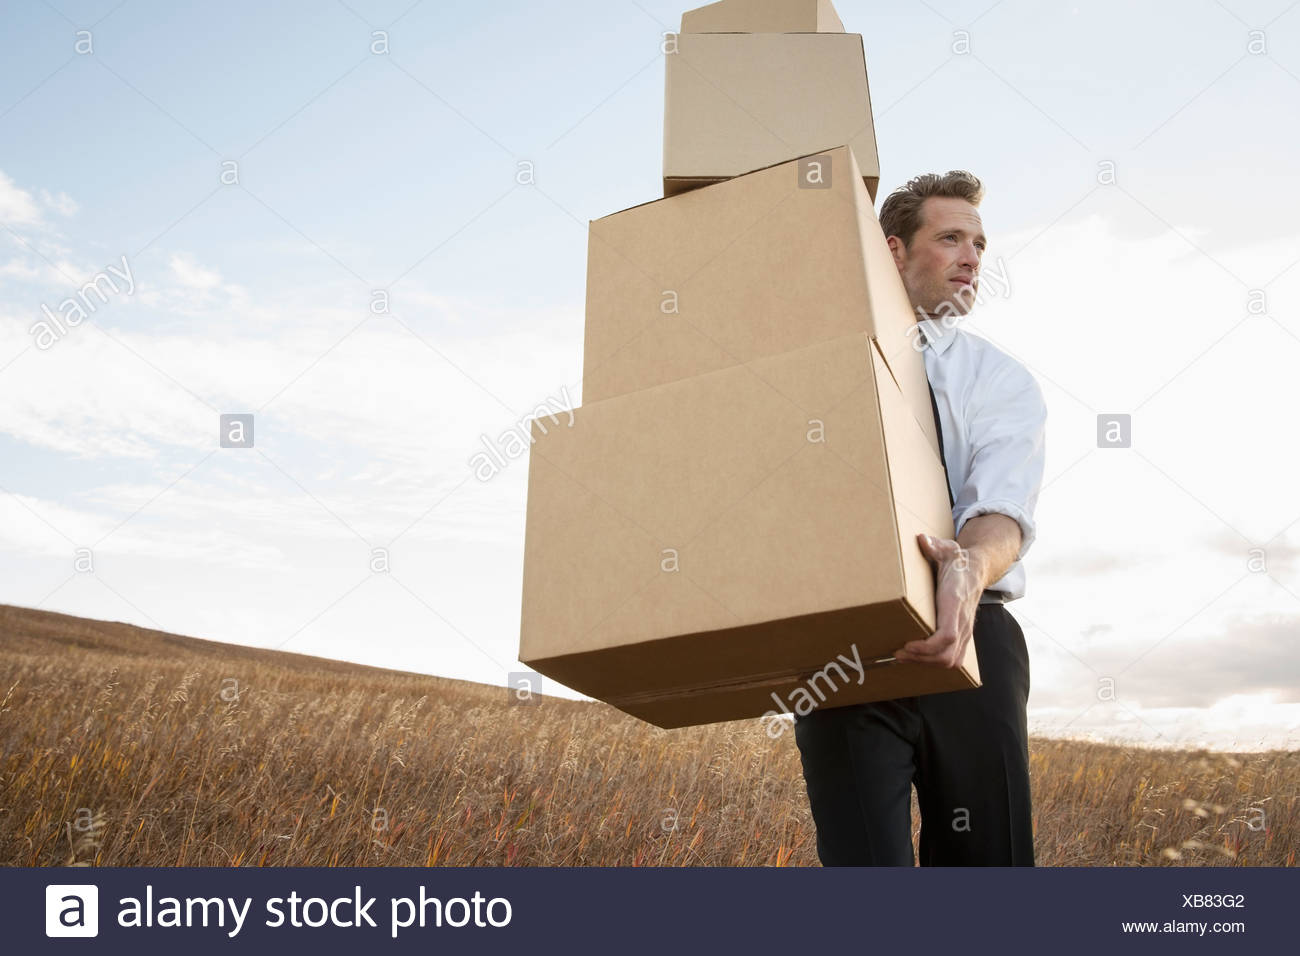 businessman carrying stacked boxes on field stock photo 282305522